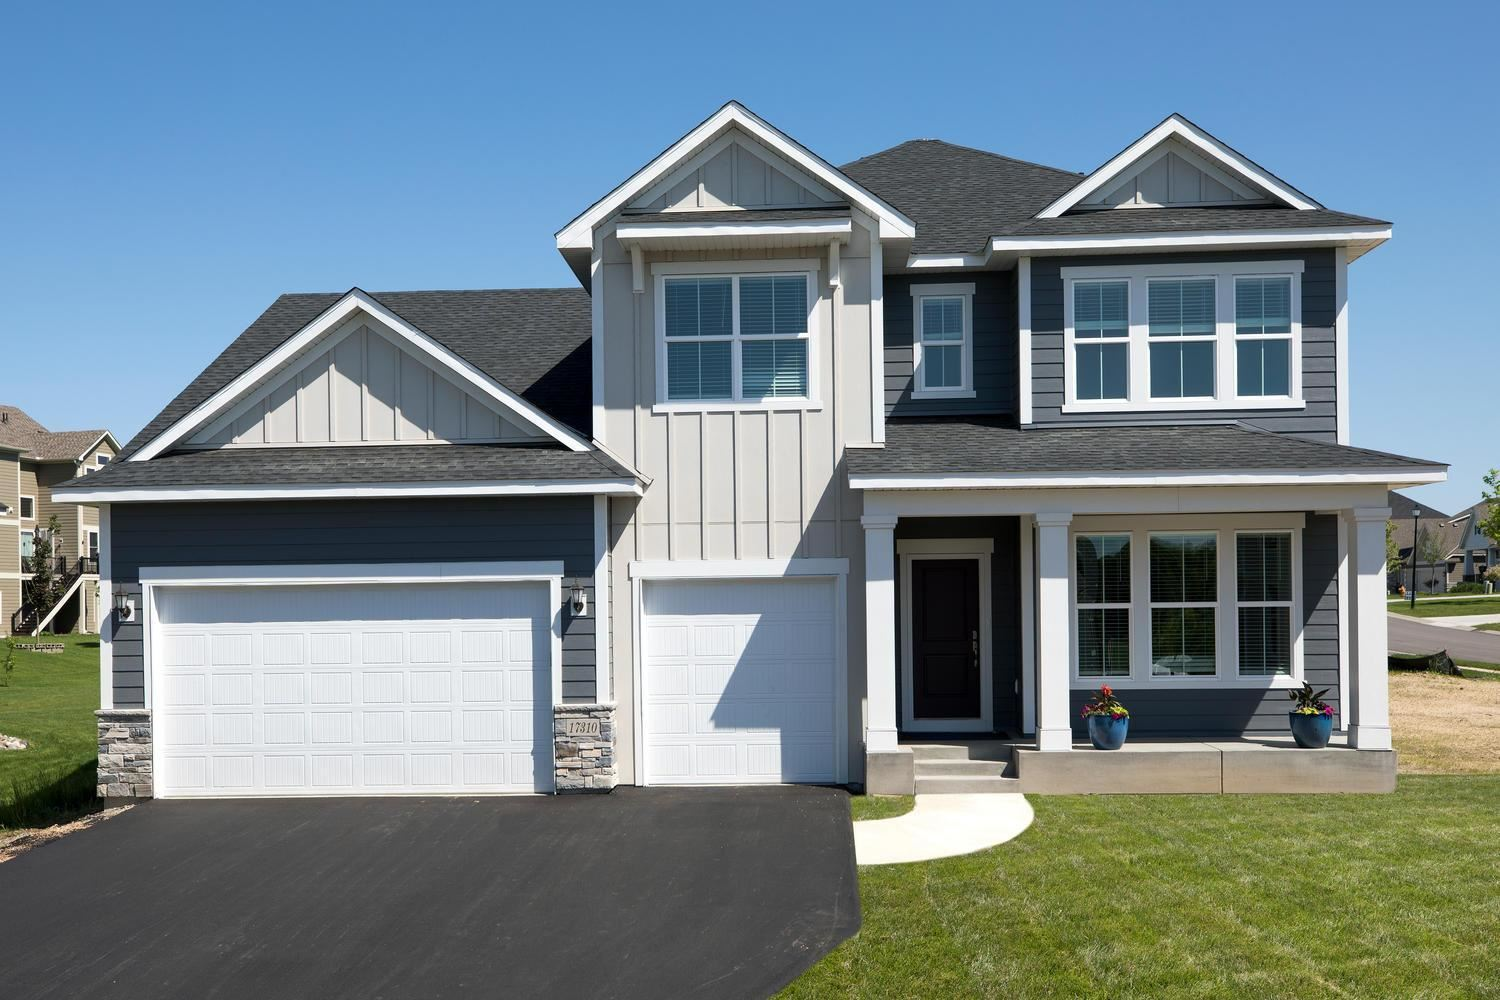 17310 59th Place N, Plymouth, MN 55446 - #: 5542421